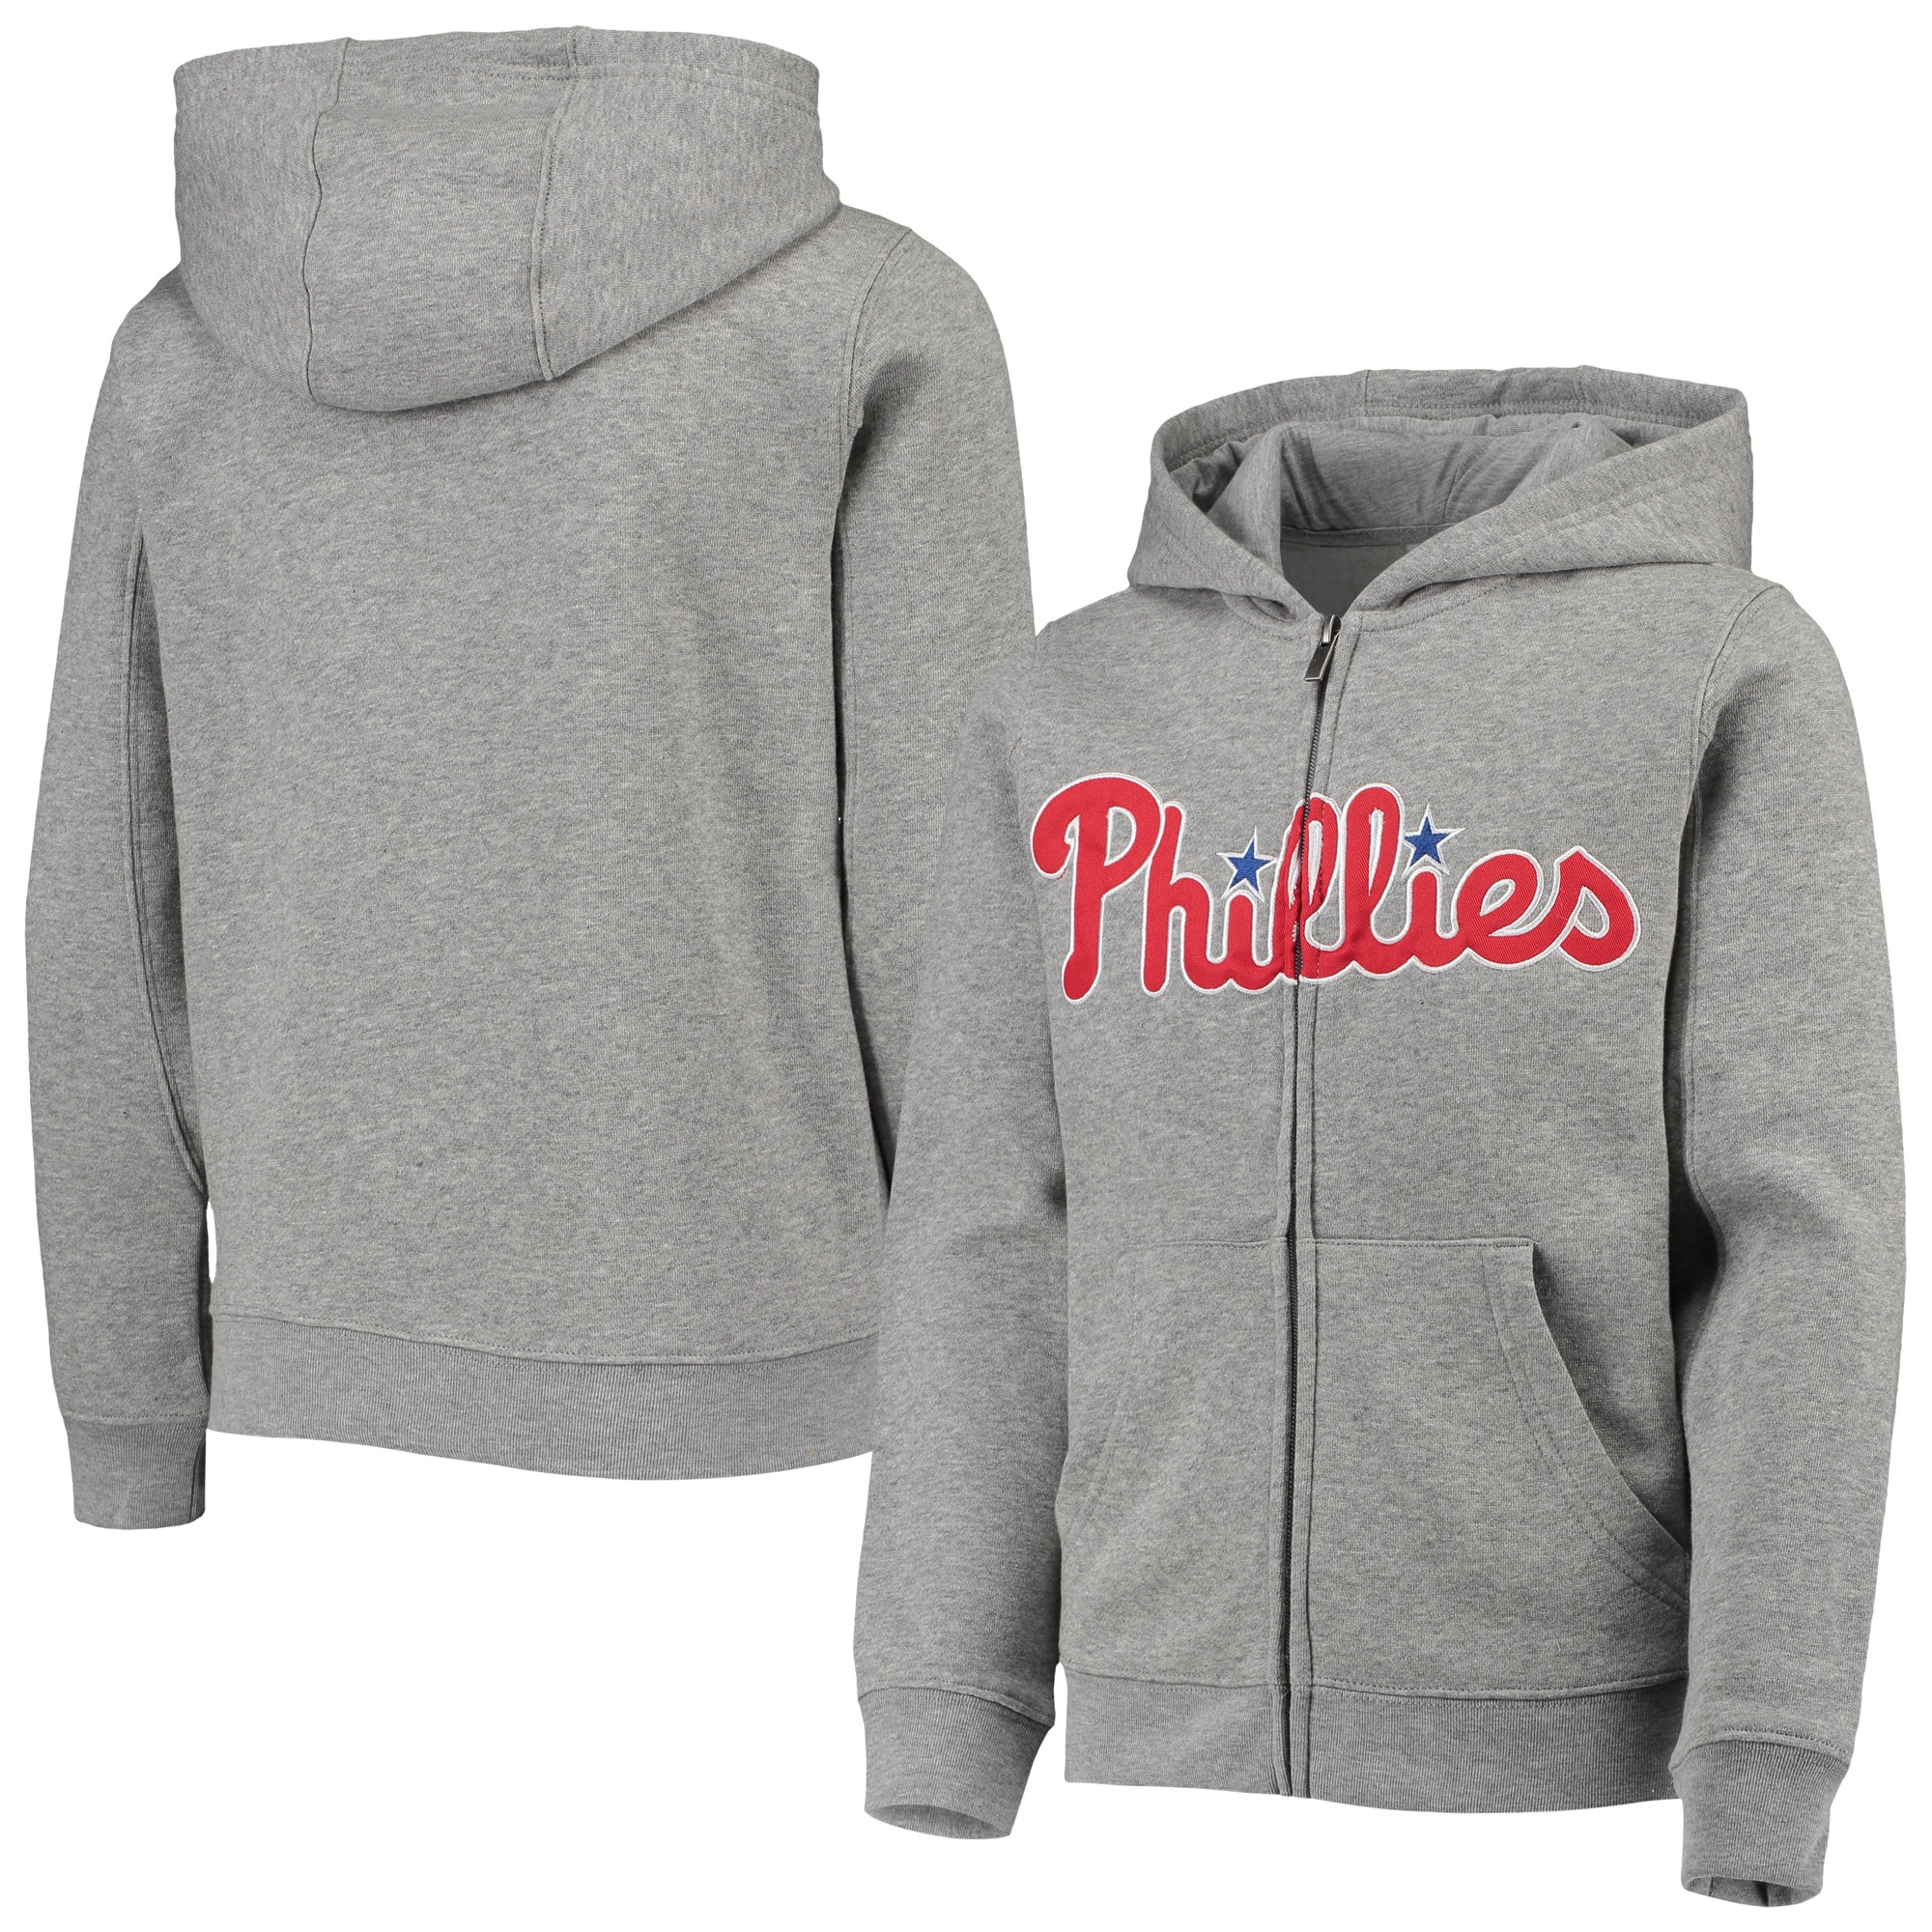 Philadelphia Phillies Youth Wordmark Full-Zip Hoodie - Heathered Gray